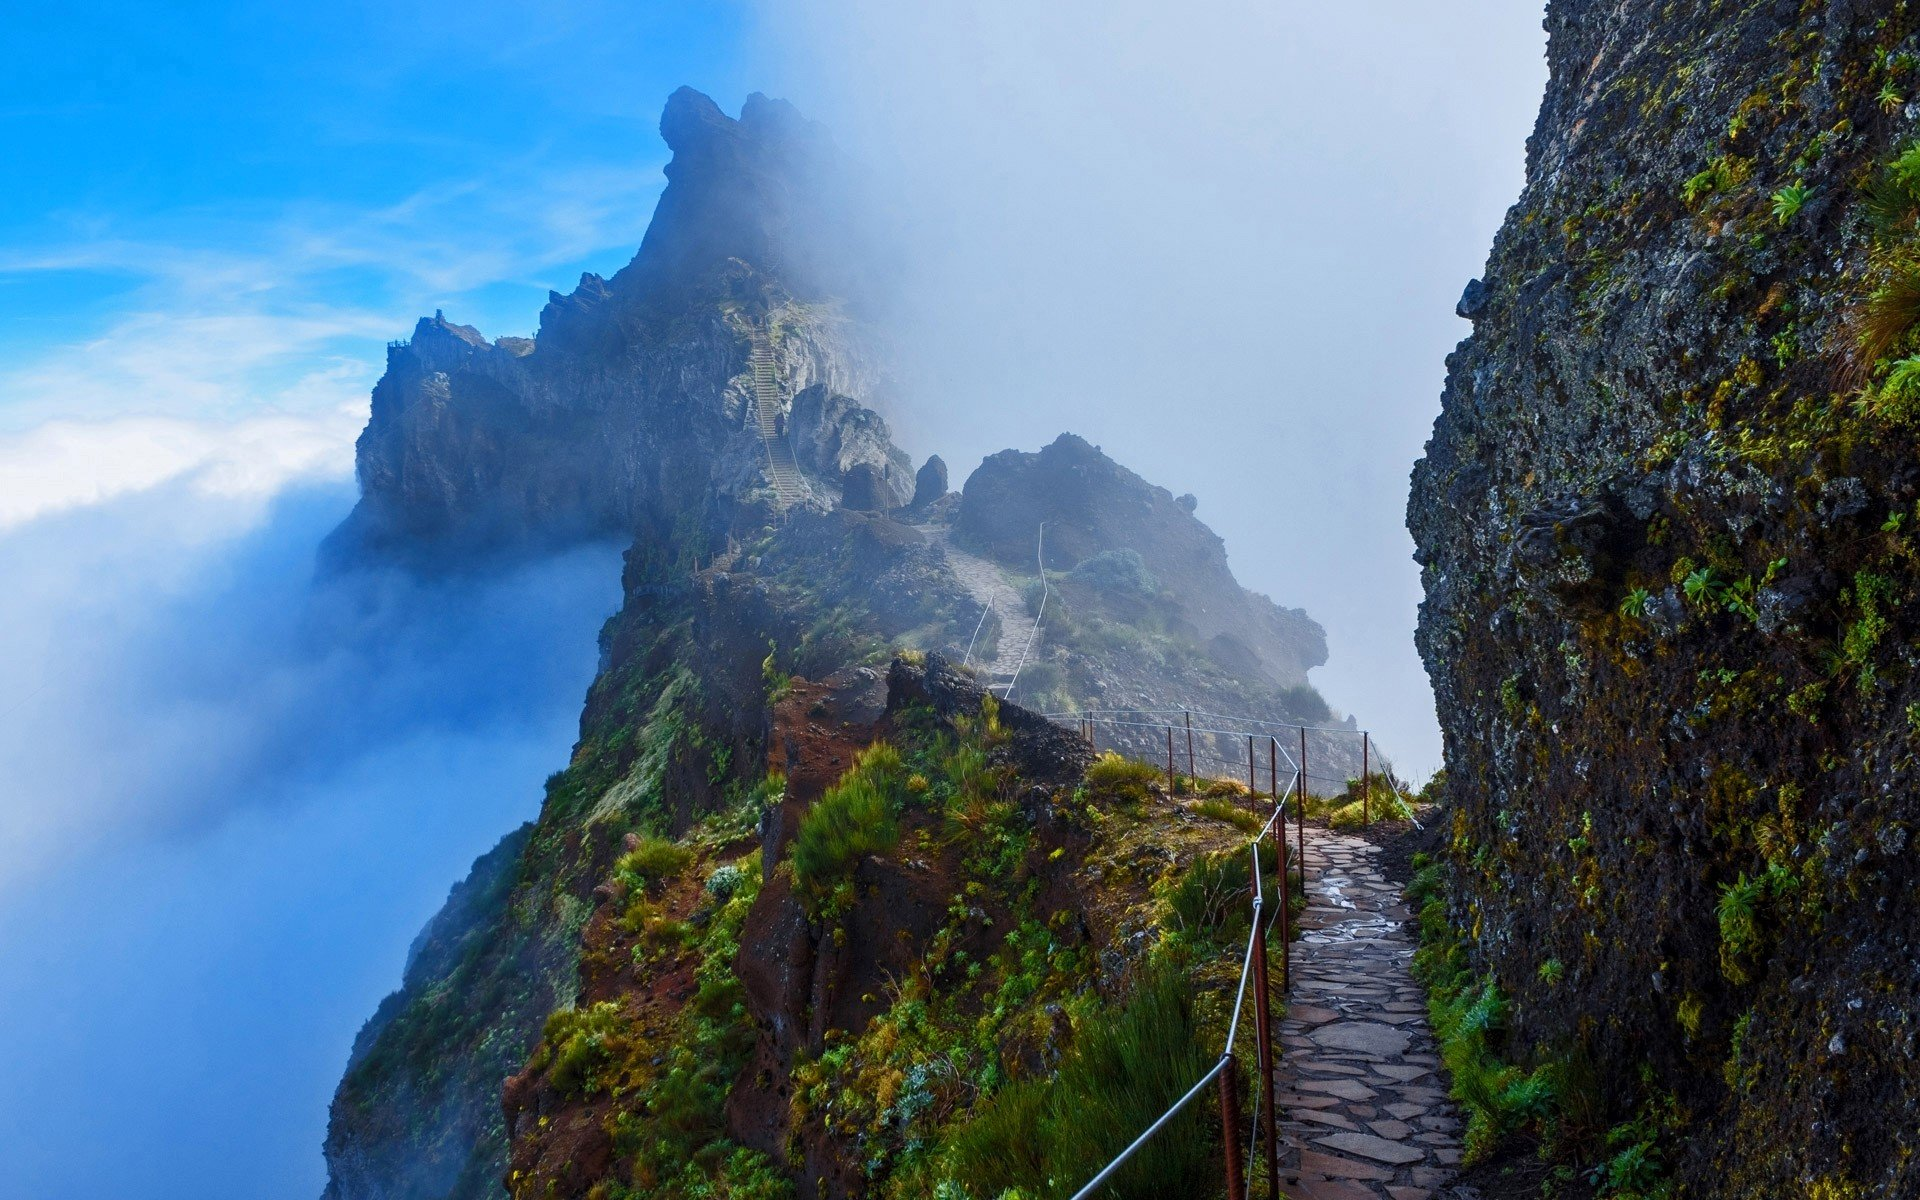 mountain trail in madeira portugal hd wallpaper background image 1920x1200 id 747966. Black Bedroom Furniture Sets. Home Design Ideas